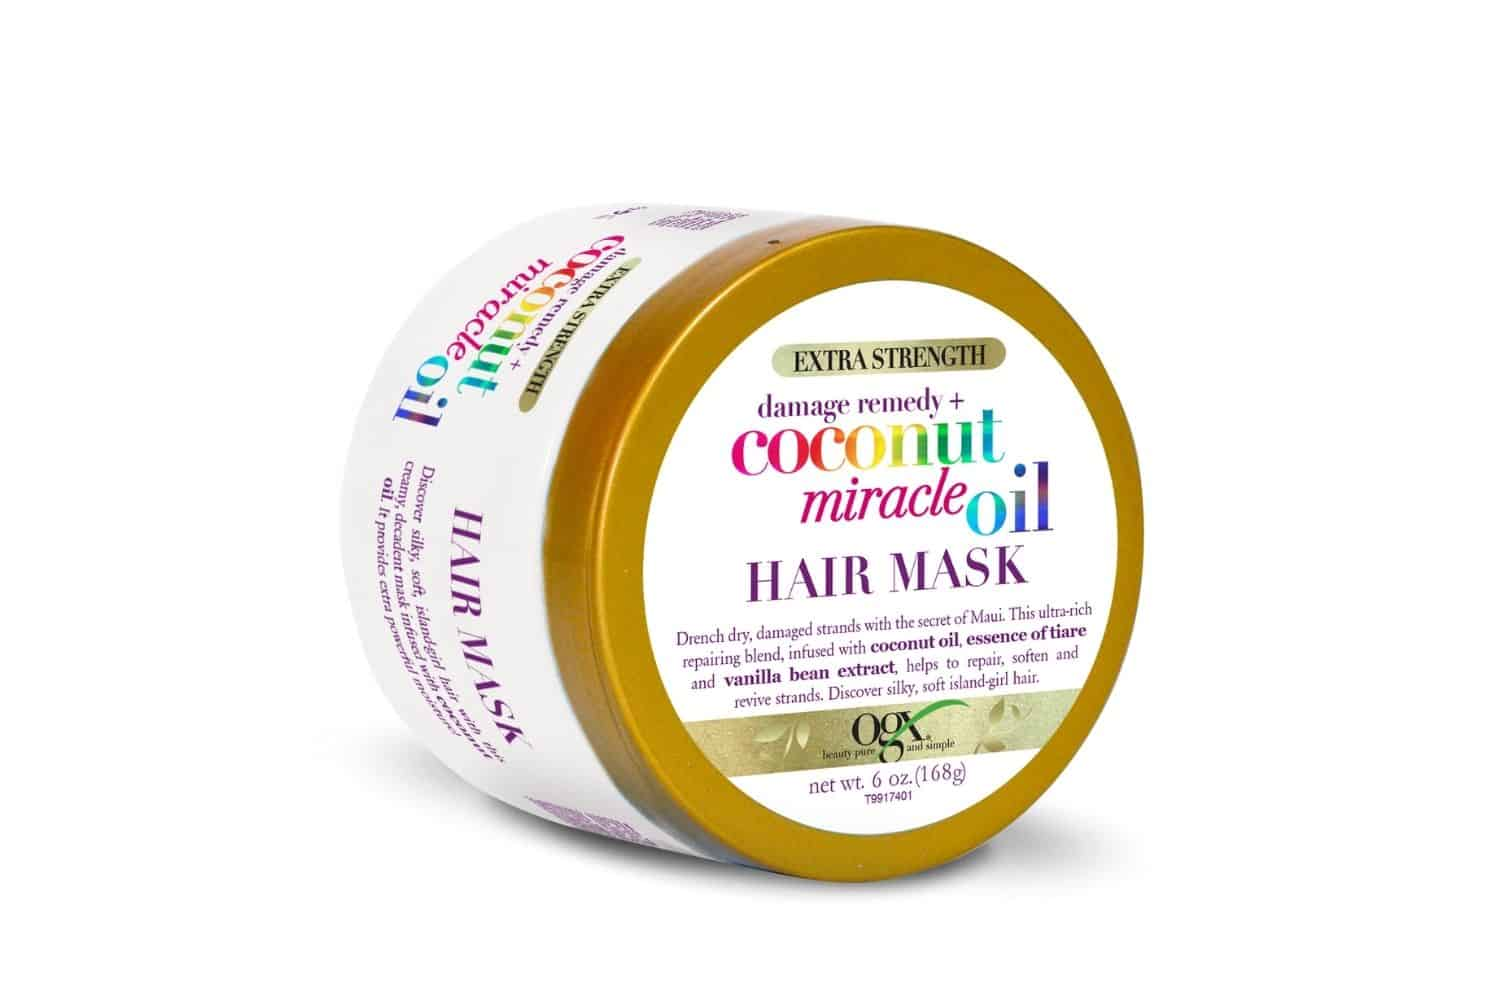 Coconut miracle oil mask